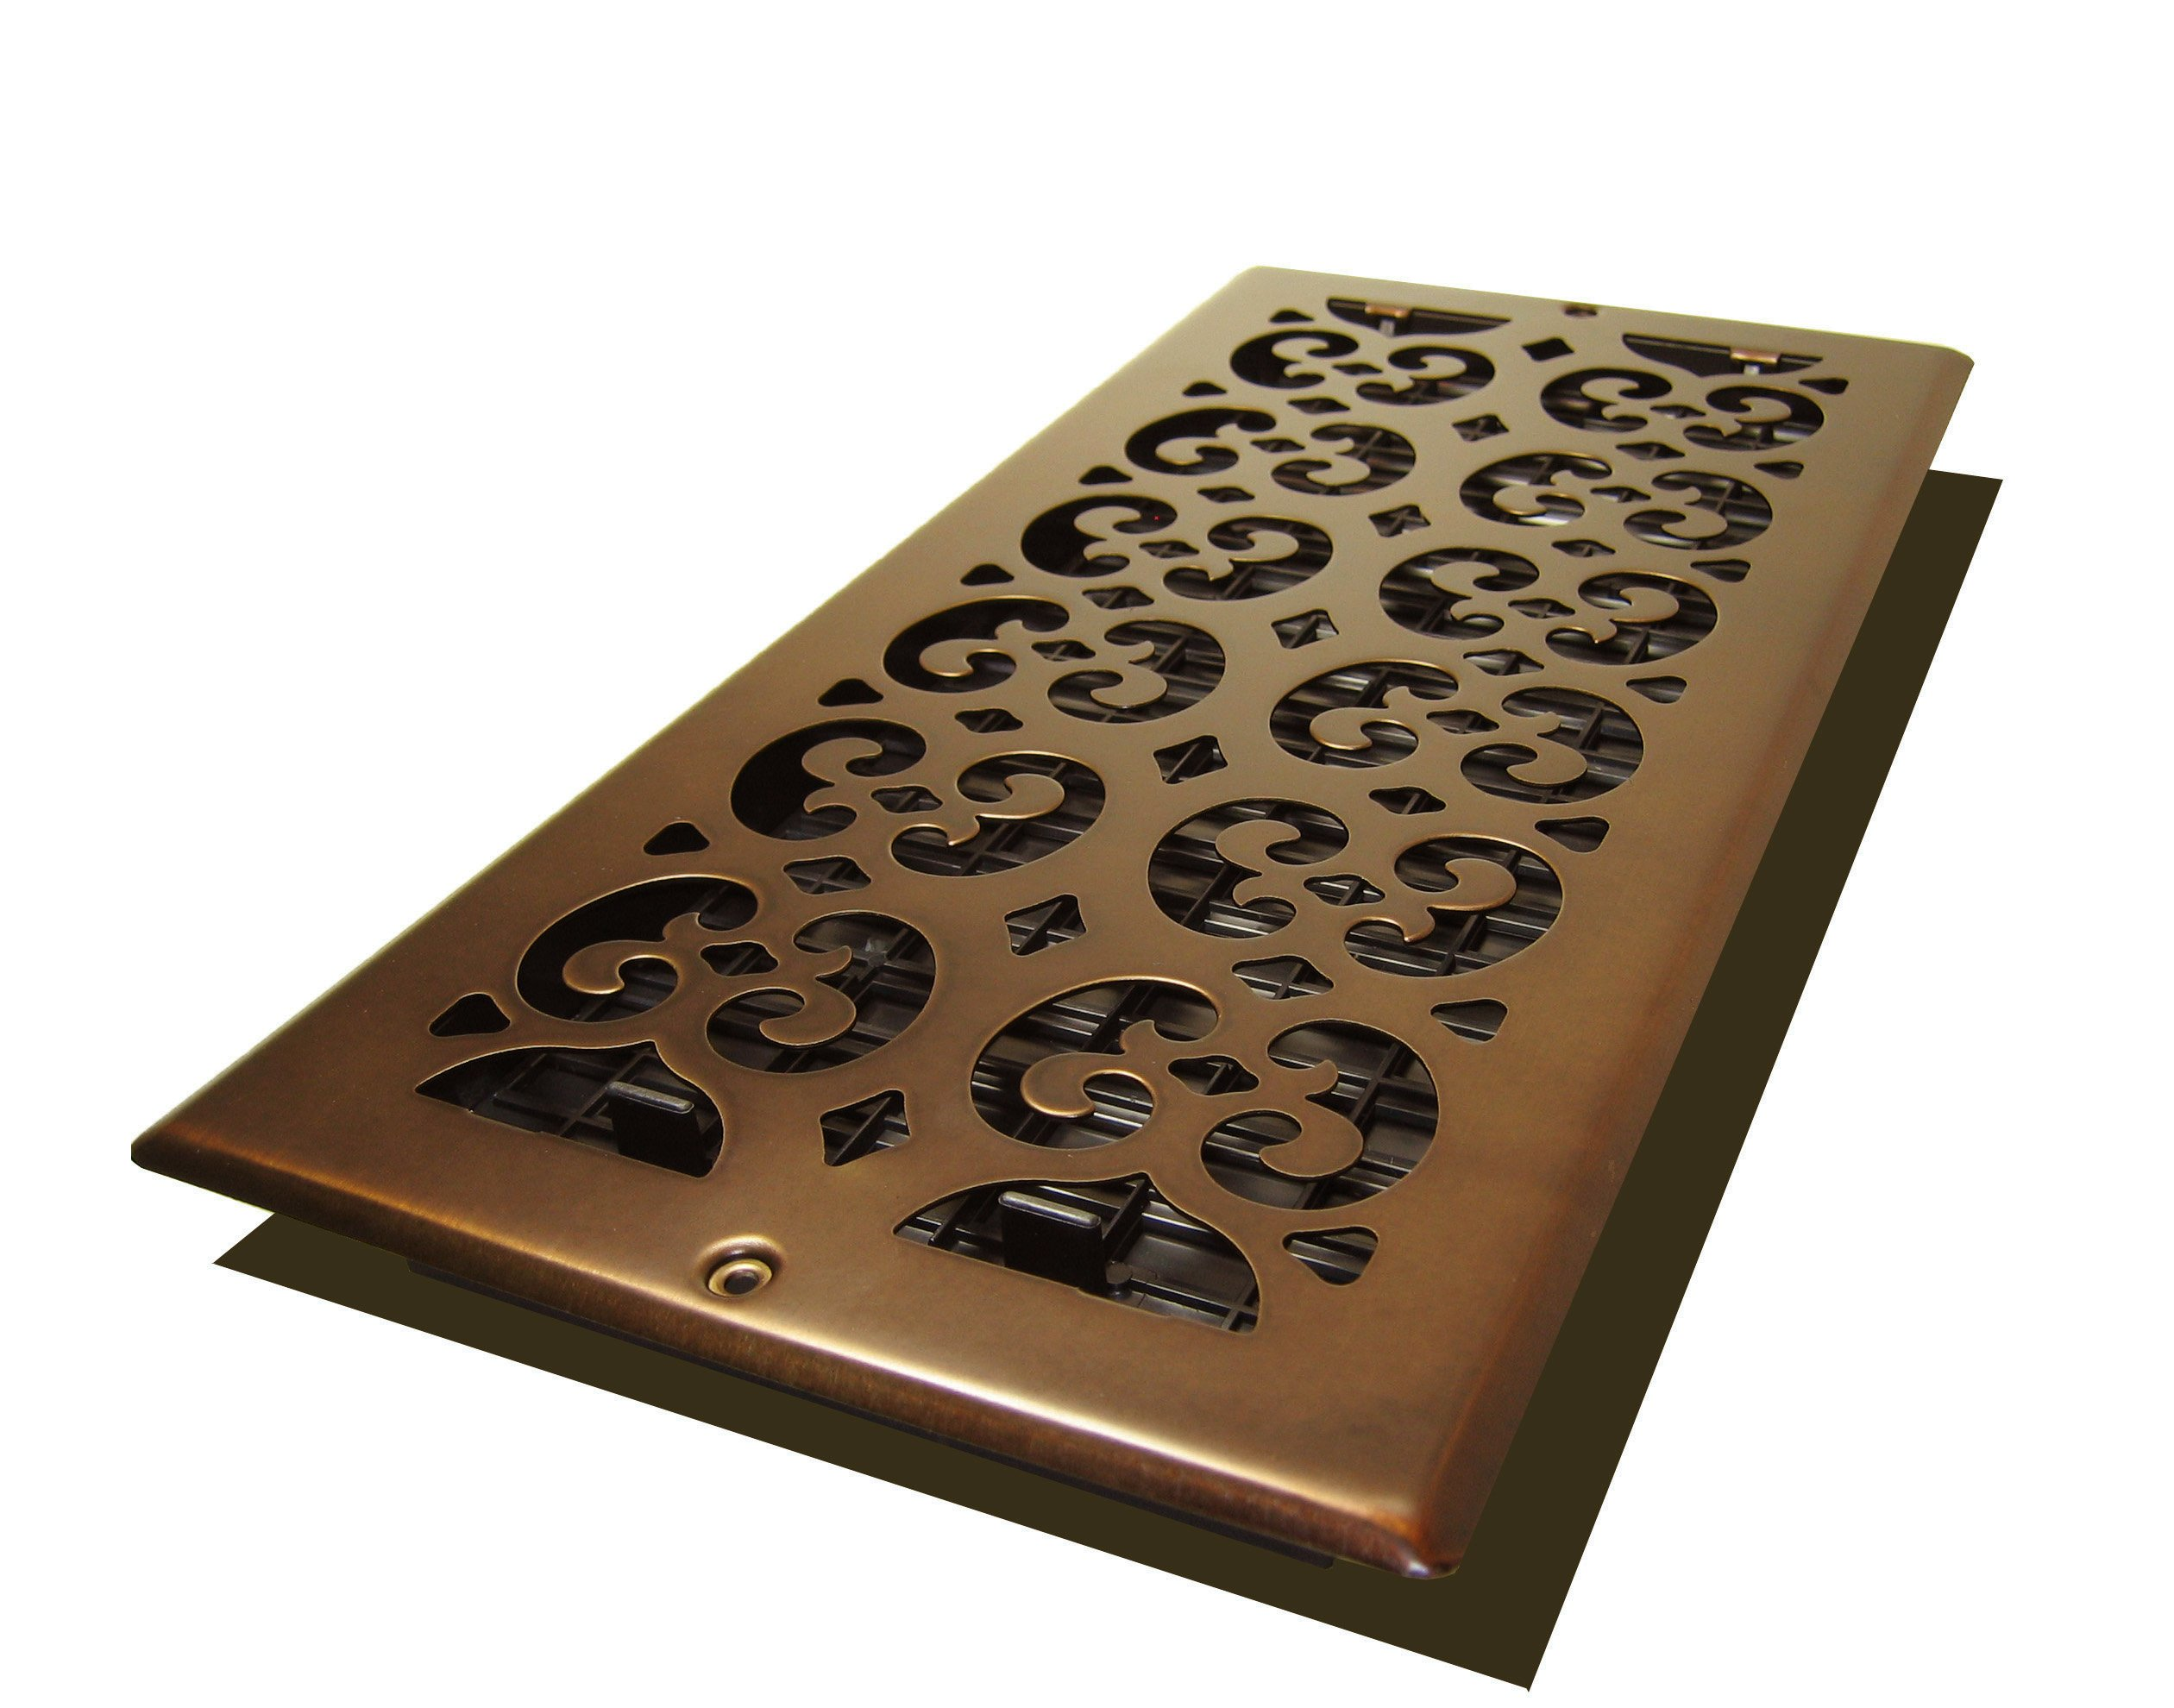 Decor Grates SP614W-RB Scroll Plated Register, 6-Inch by 14-Inch, Rubbed Bronze